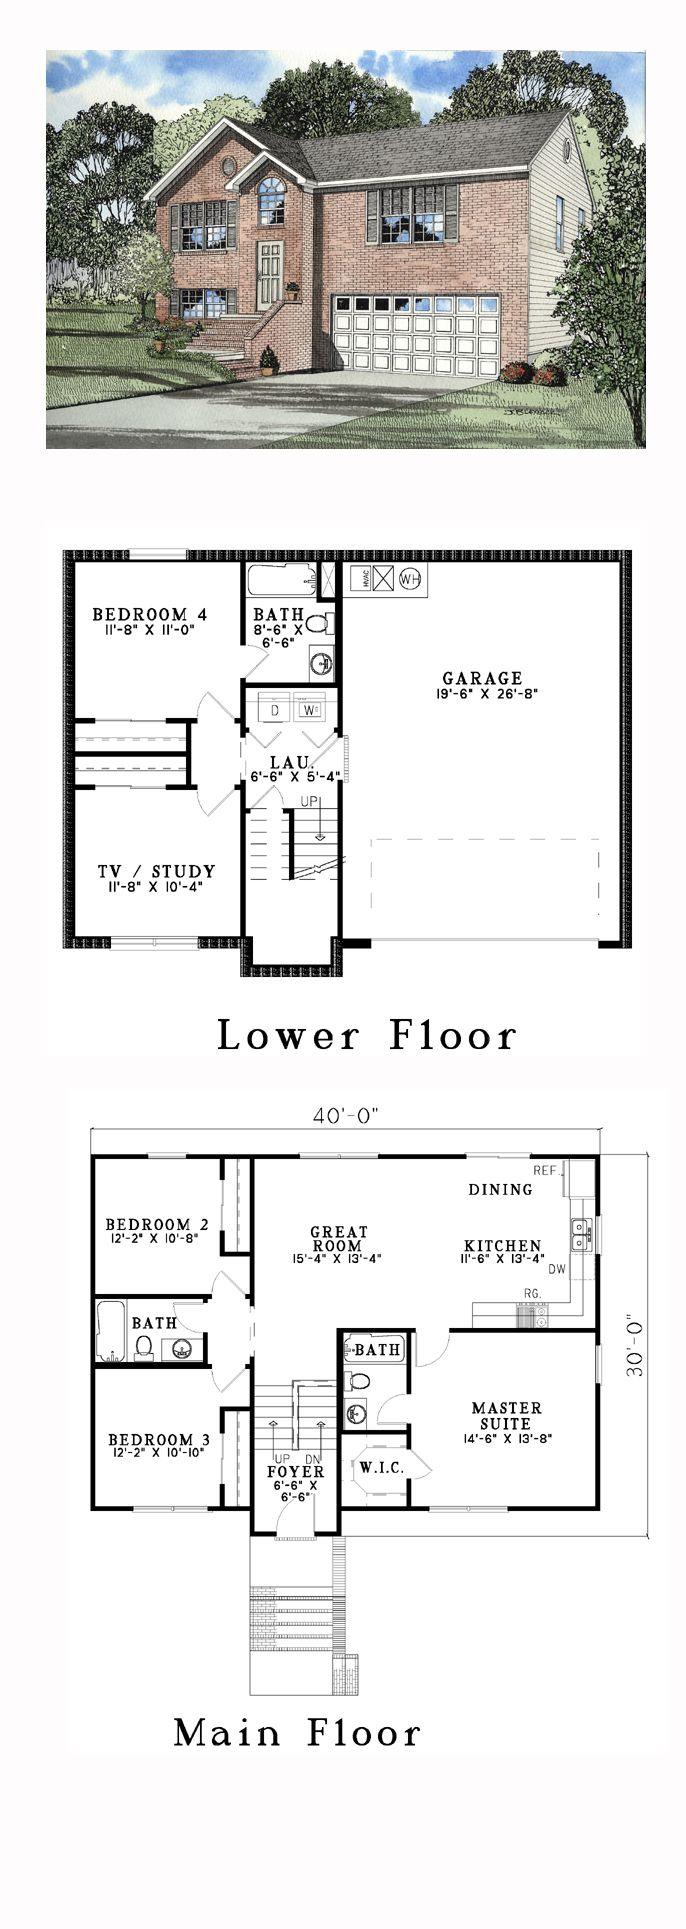 Astonishing 17 Best Ideas About Cool House Plans On Pinterest Small Cottage Largest Home Design Picture Inspirations Pitcheantrous